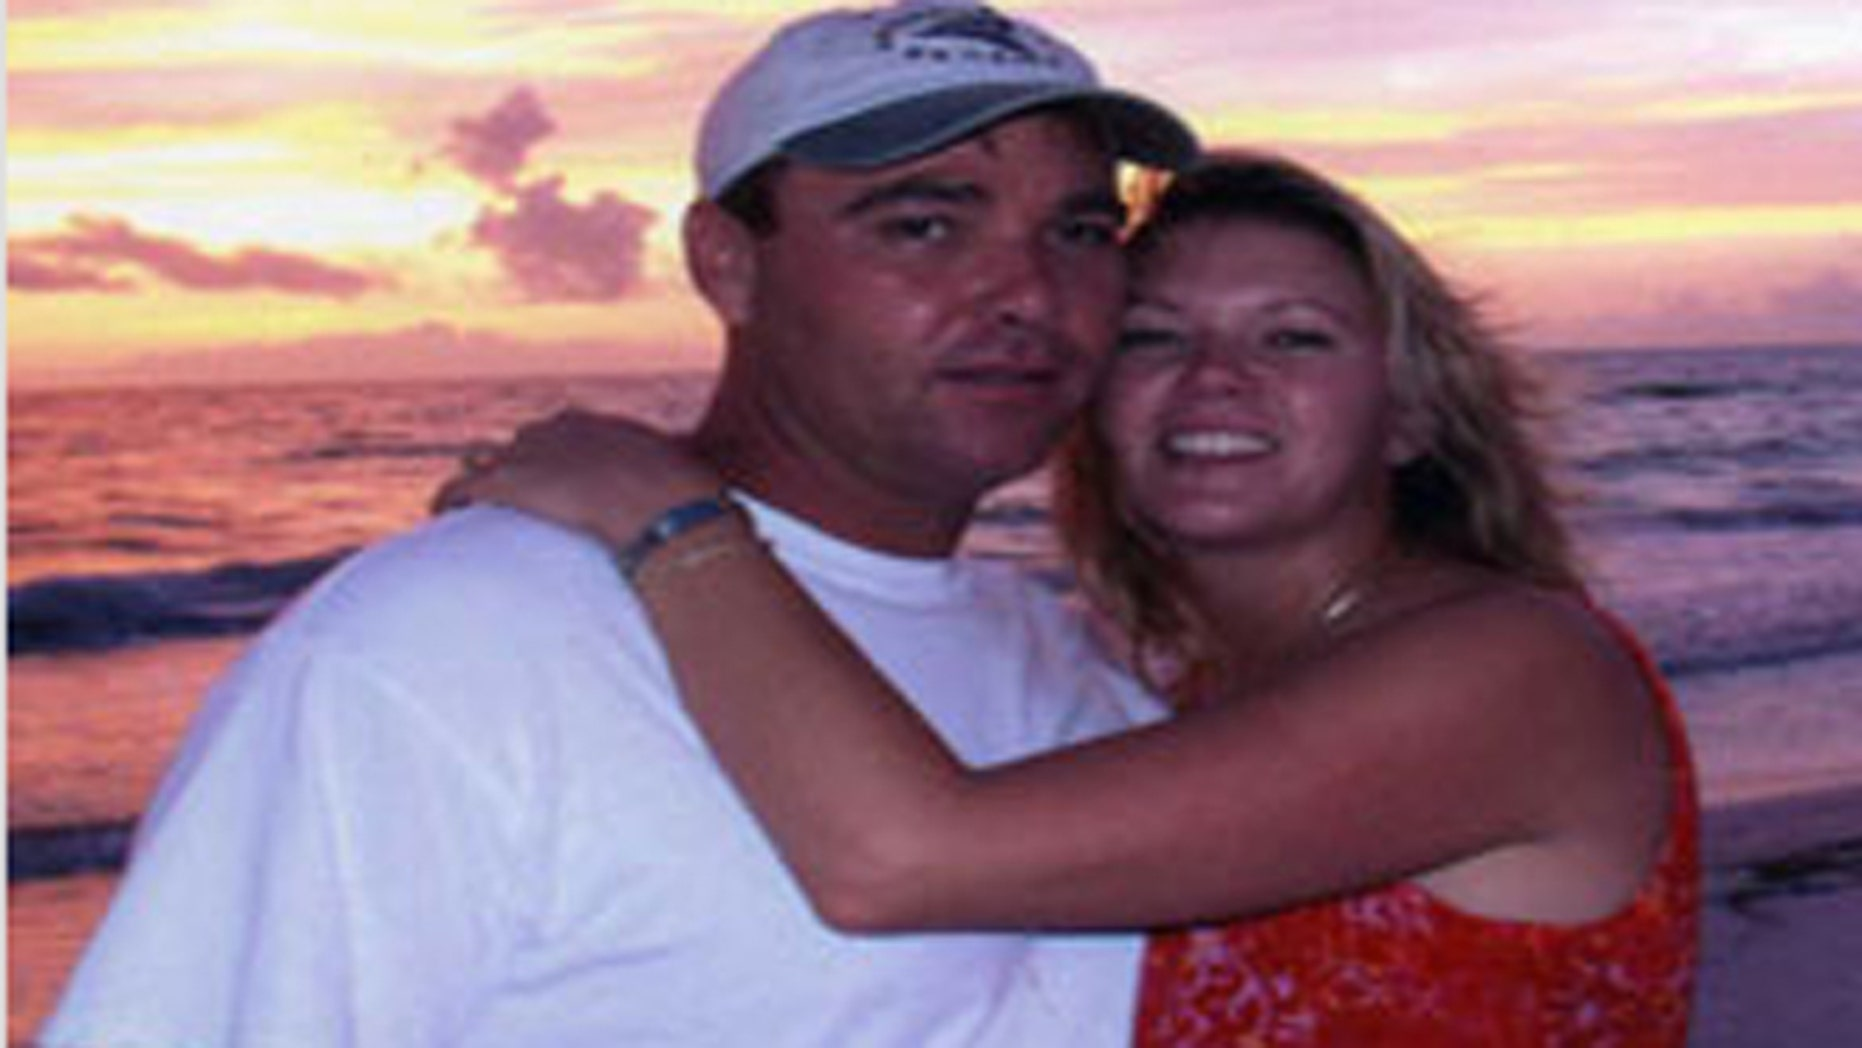 David and Dawn Viens, before her disappearance